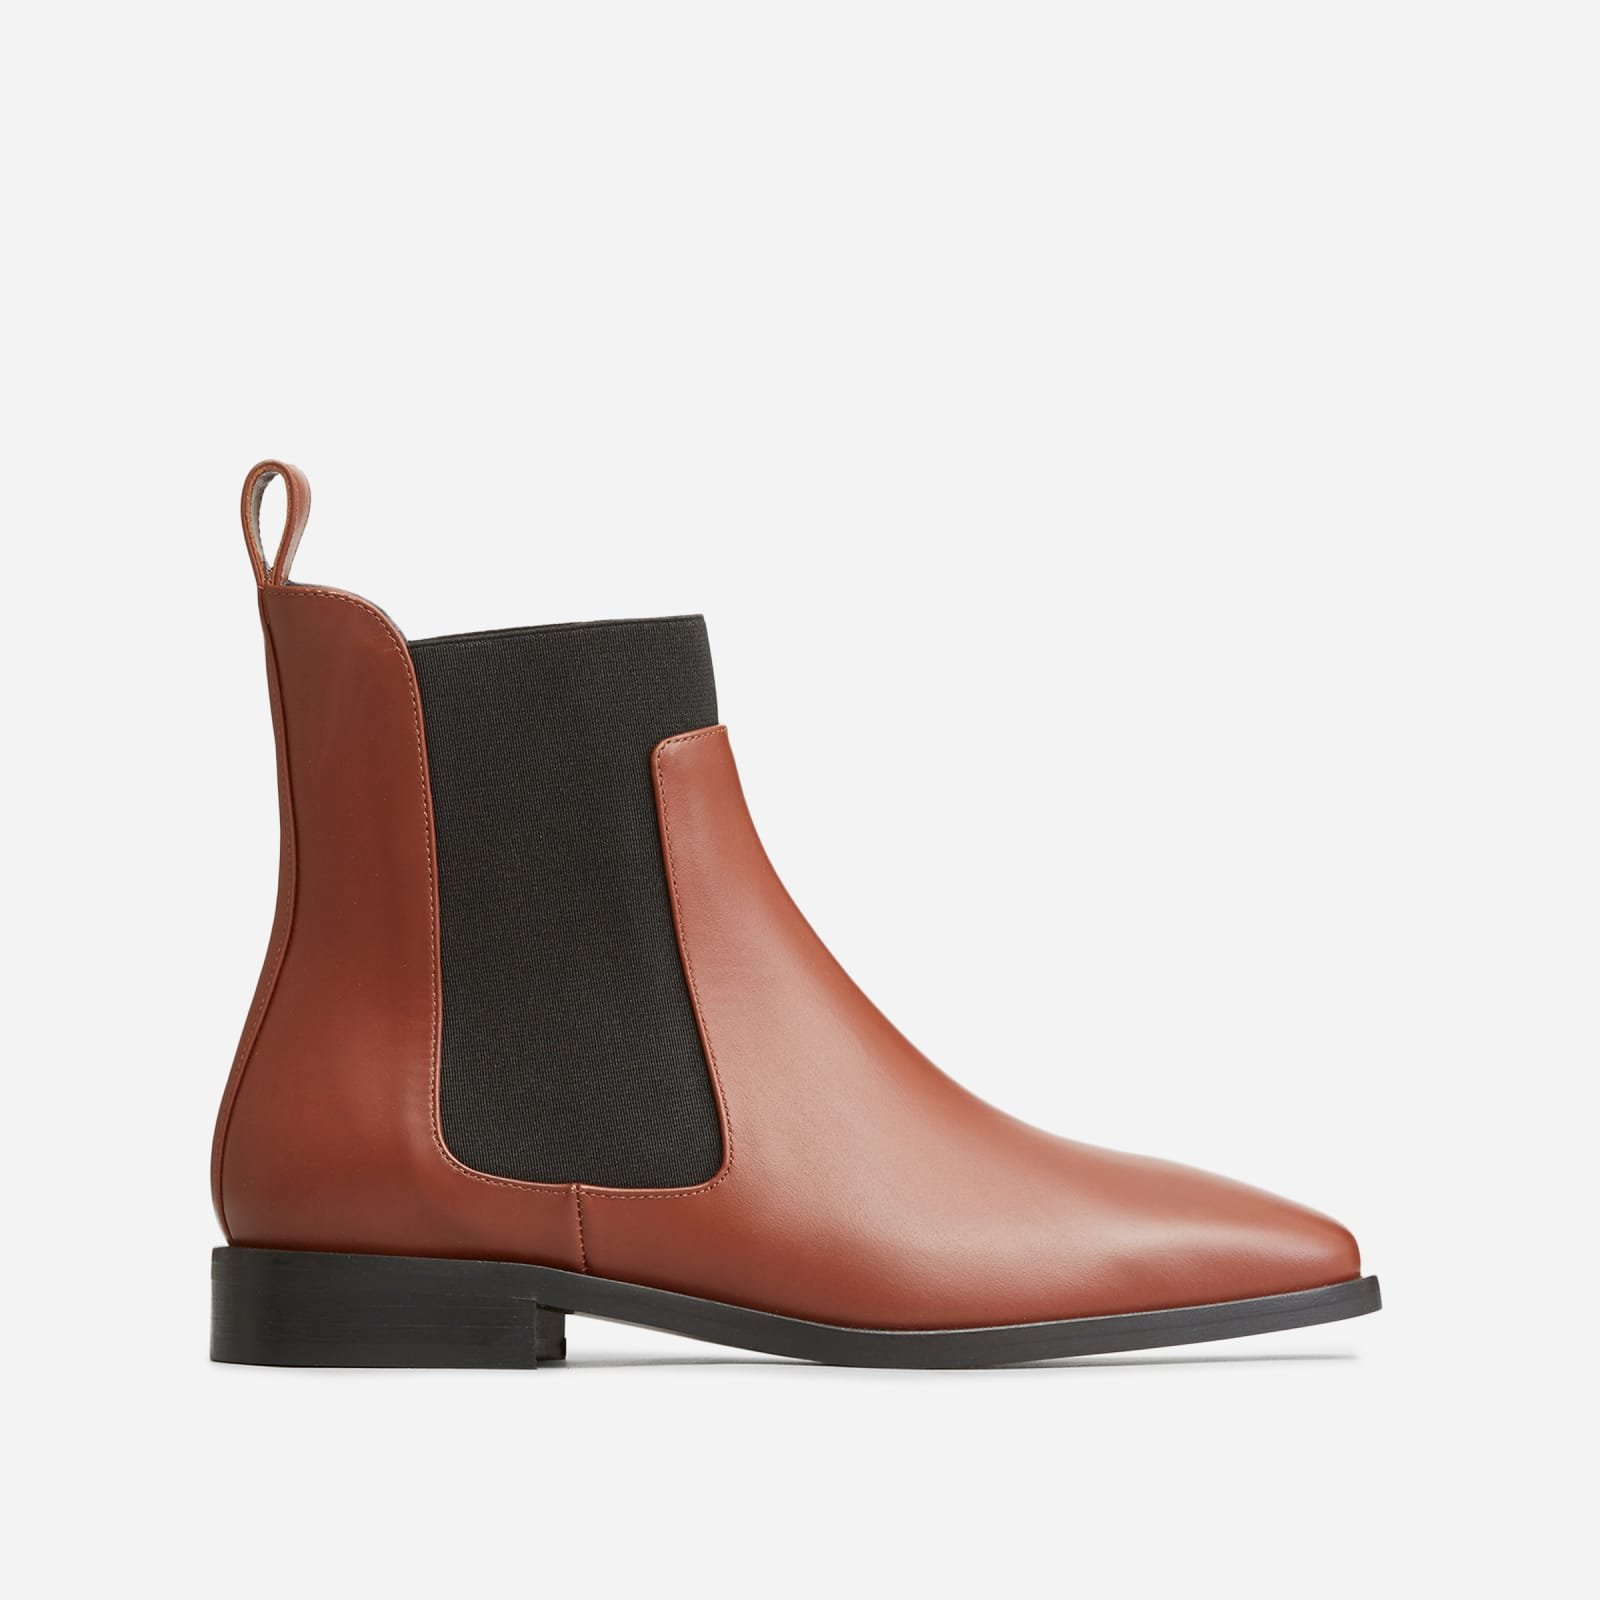 square toe chelsea boot by everlane in cedar, size 10